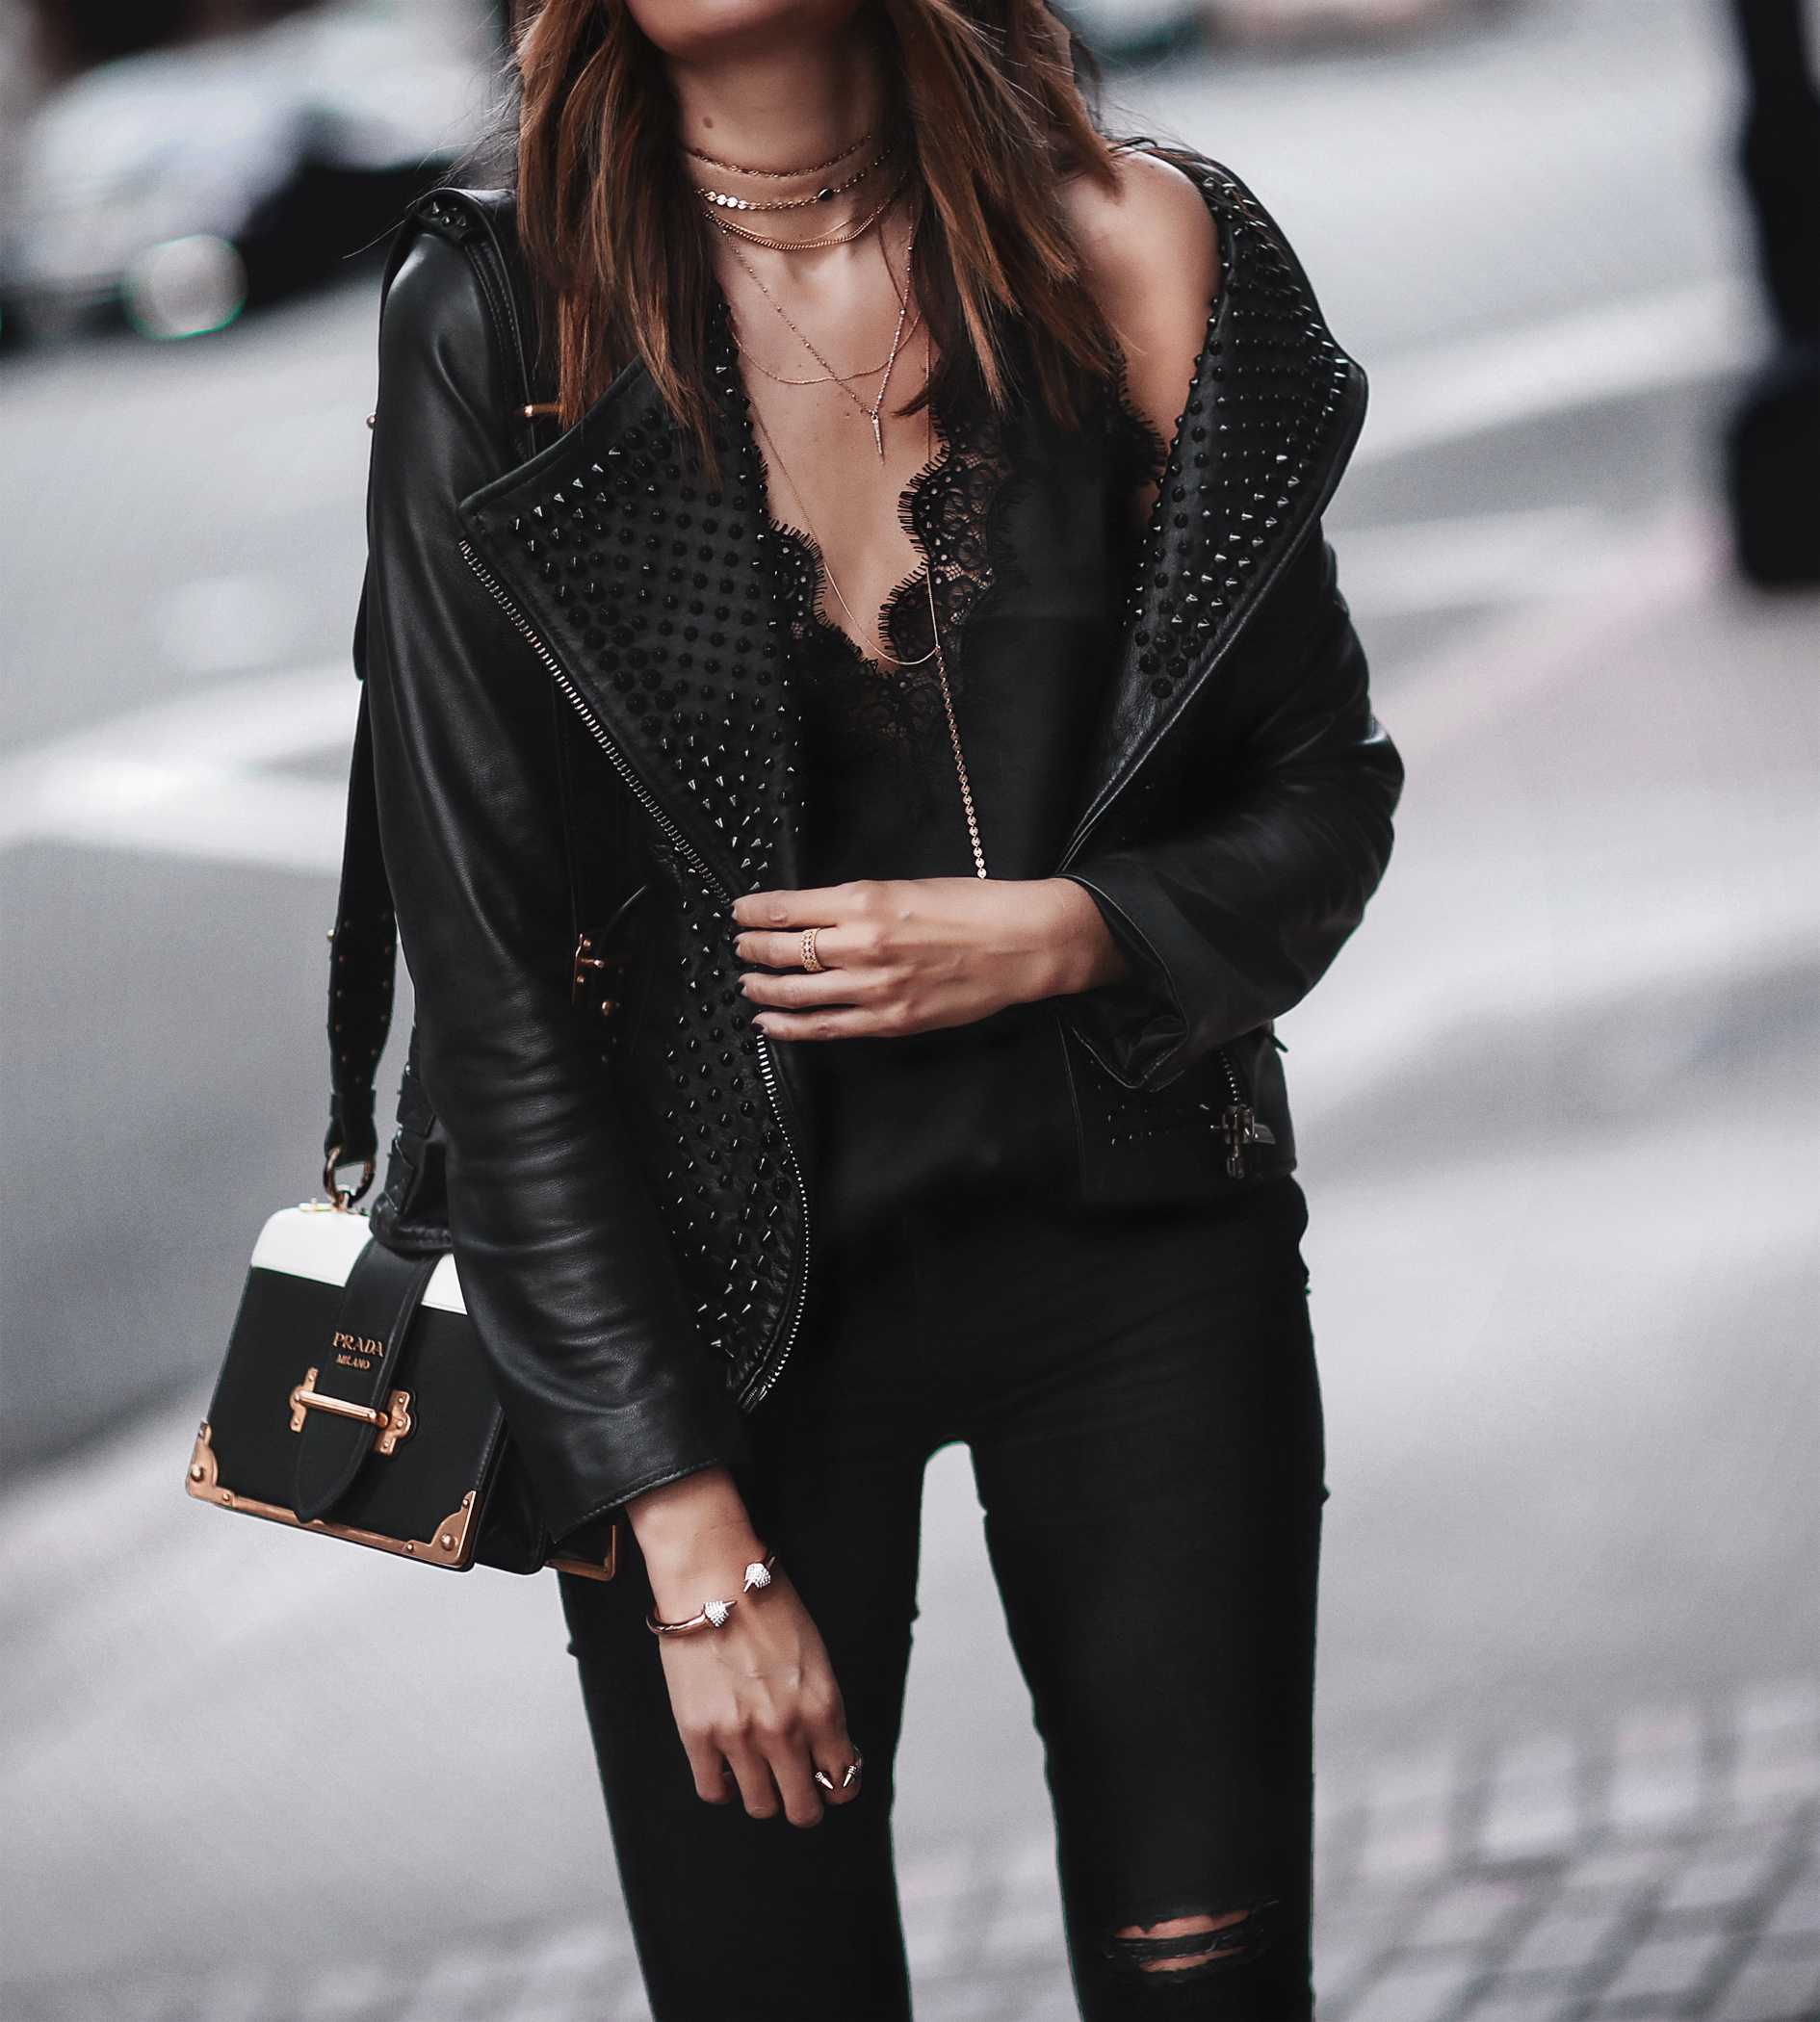 studded leather jacket, lace cami, layered chokers, prada bag